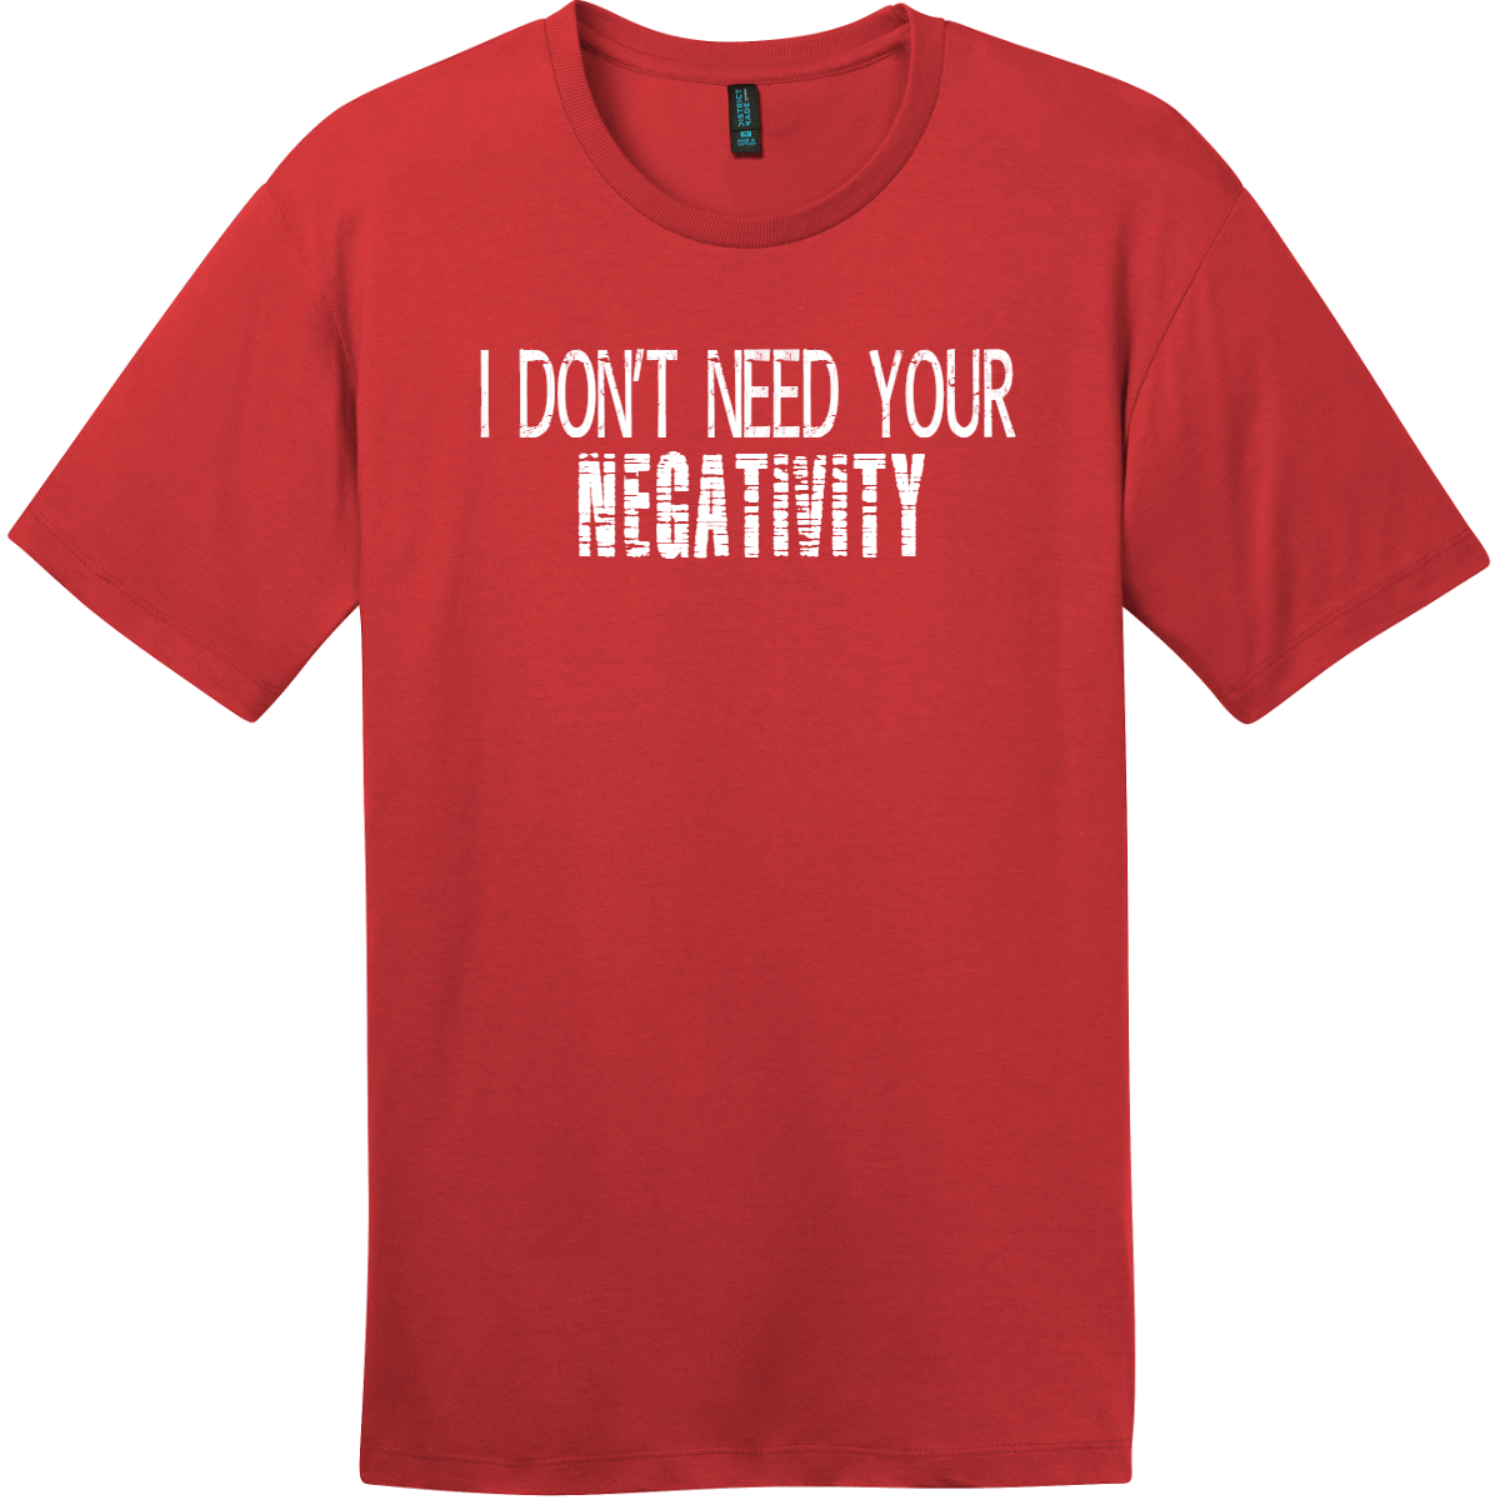 I Don't Need Your Negativity T-Shirt Classic Red District Perfect Weight Tee DT104